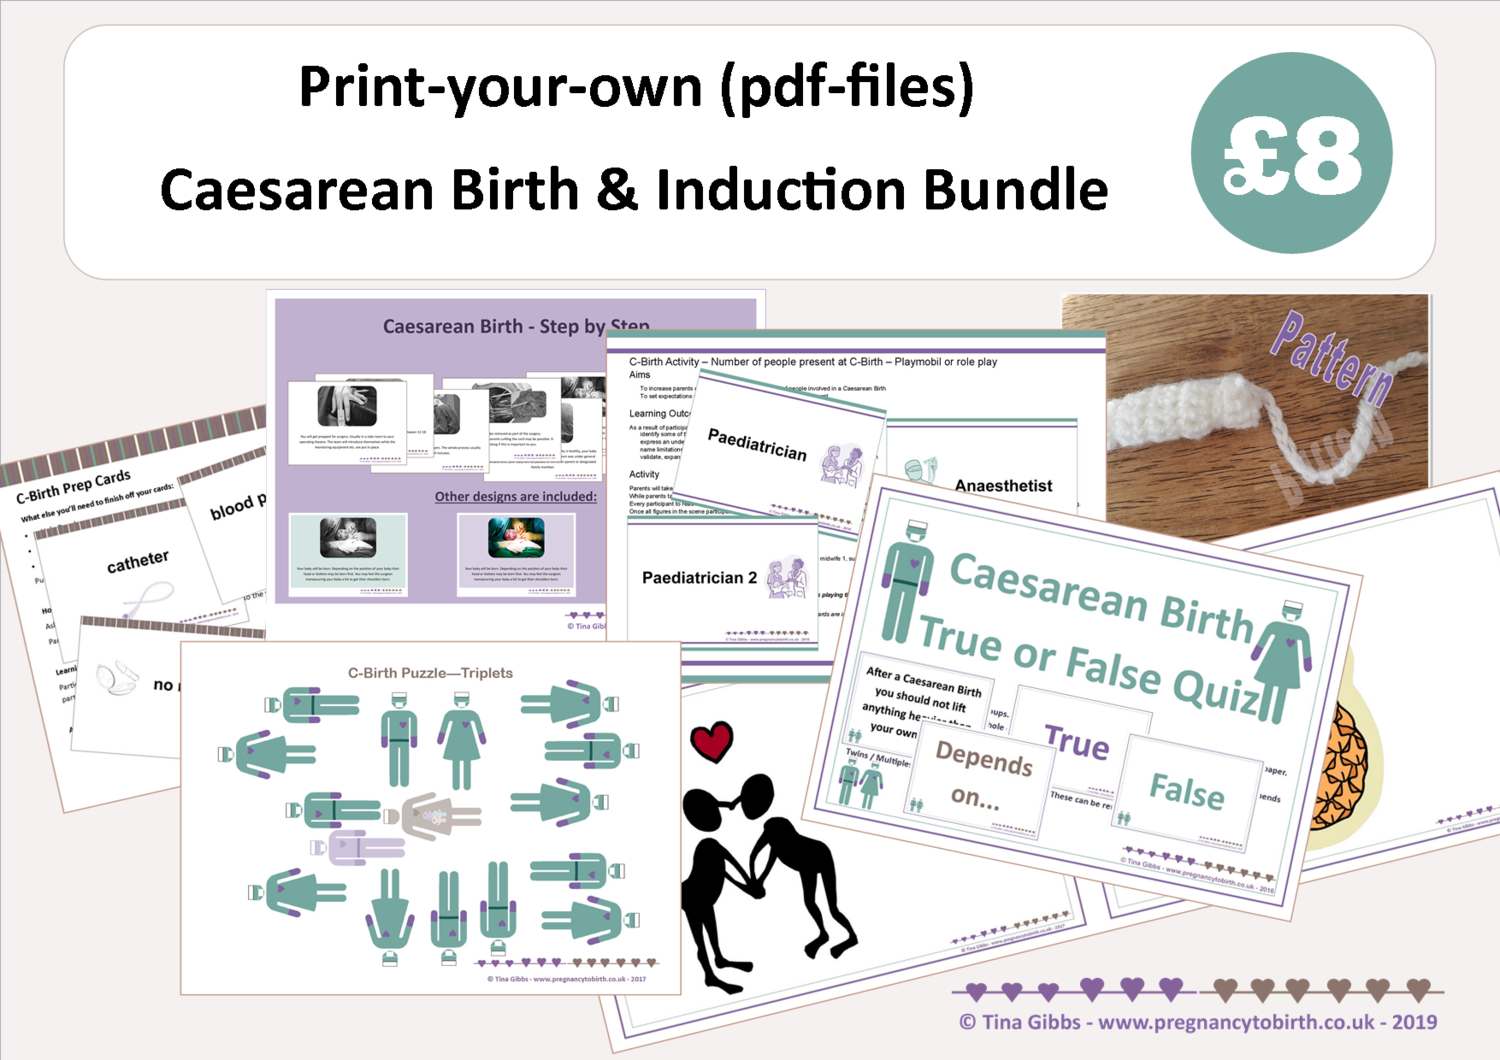 Caesarean Birth & Induction Bundle (zip file containing pdf files)